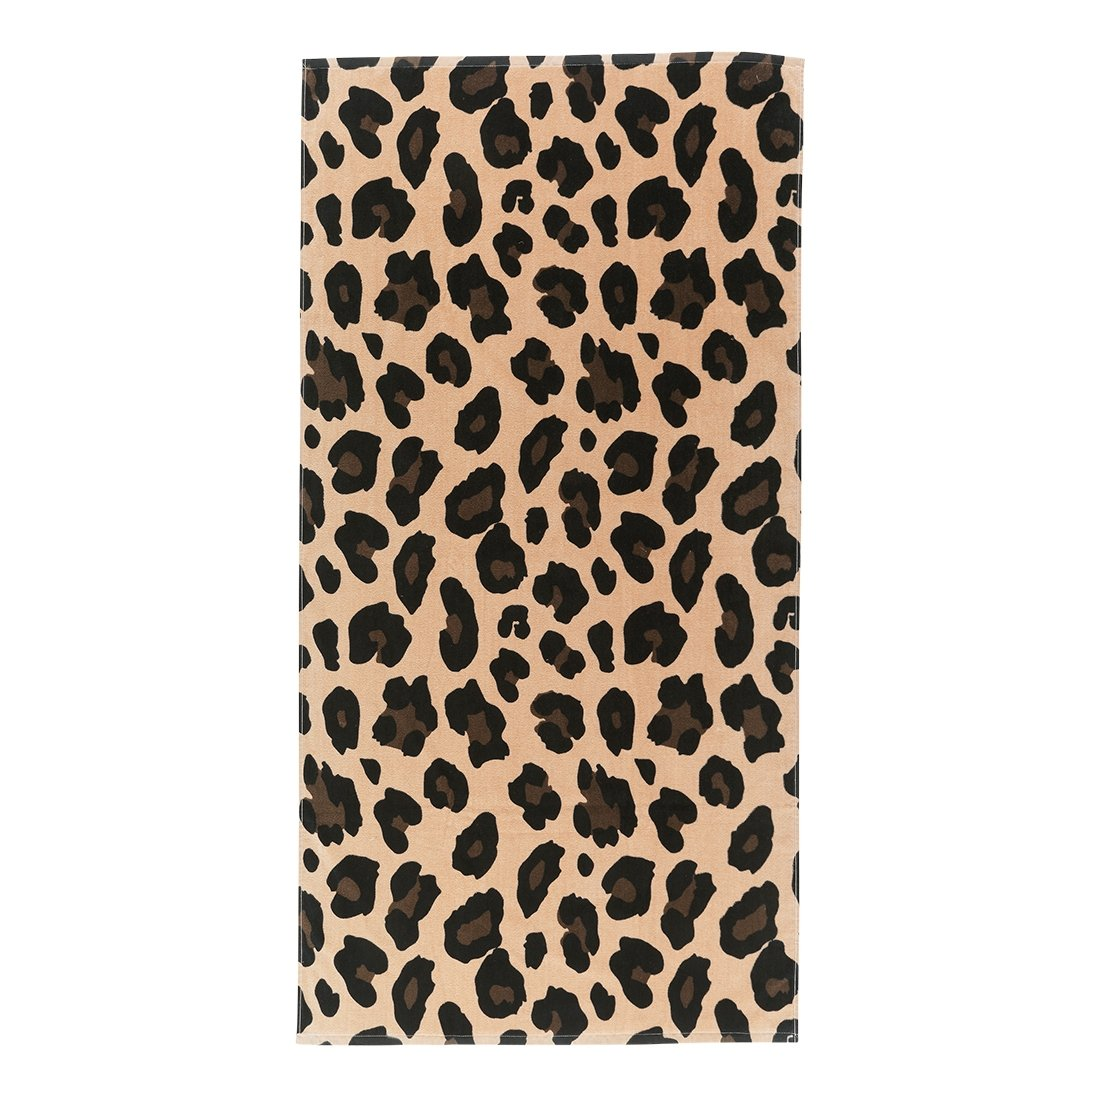 Wild Side Leopard Towel